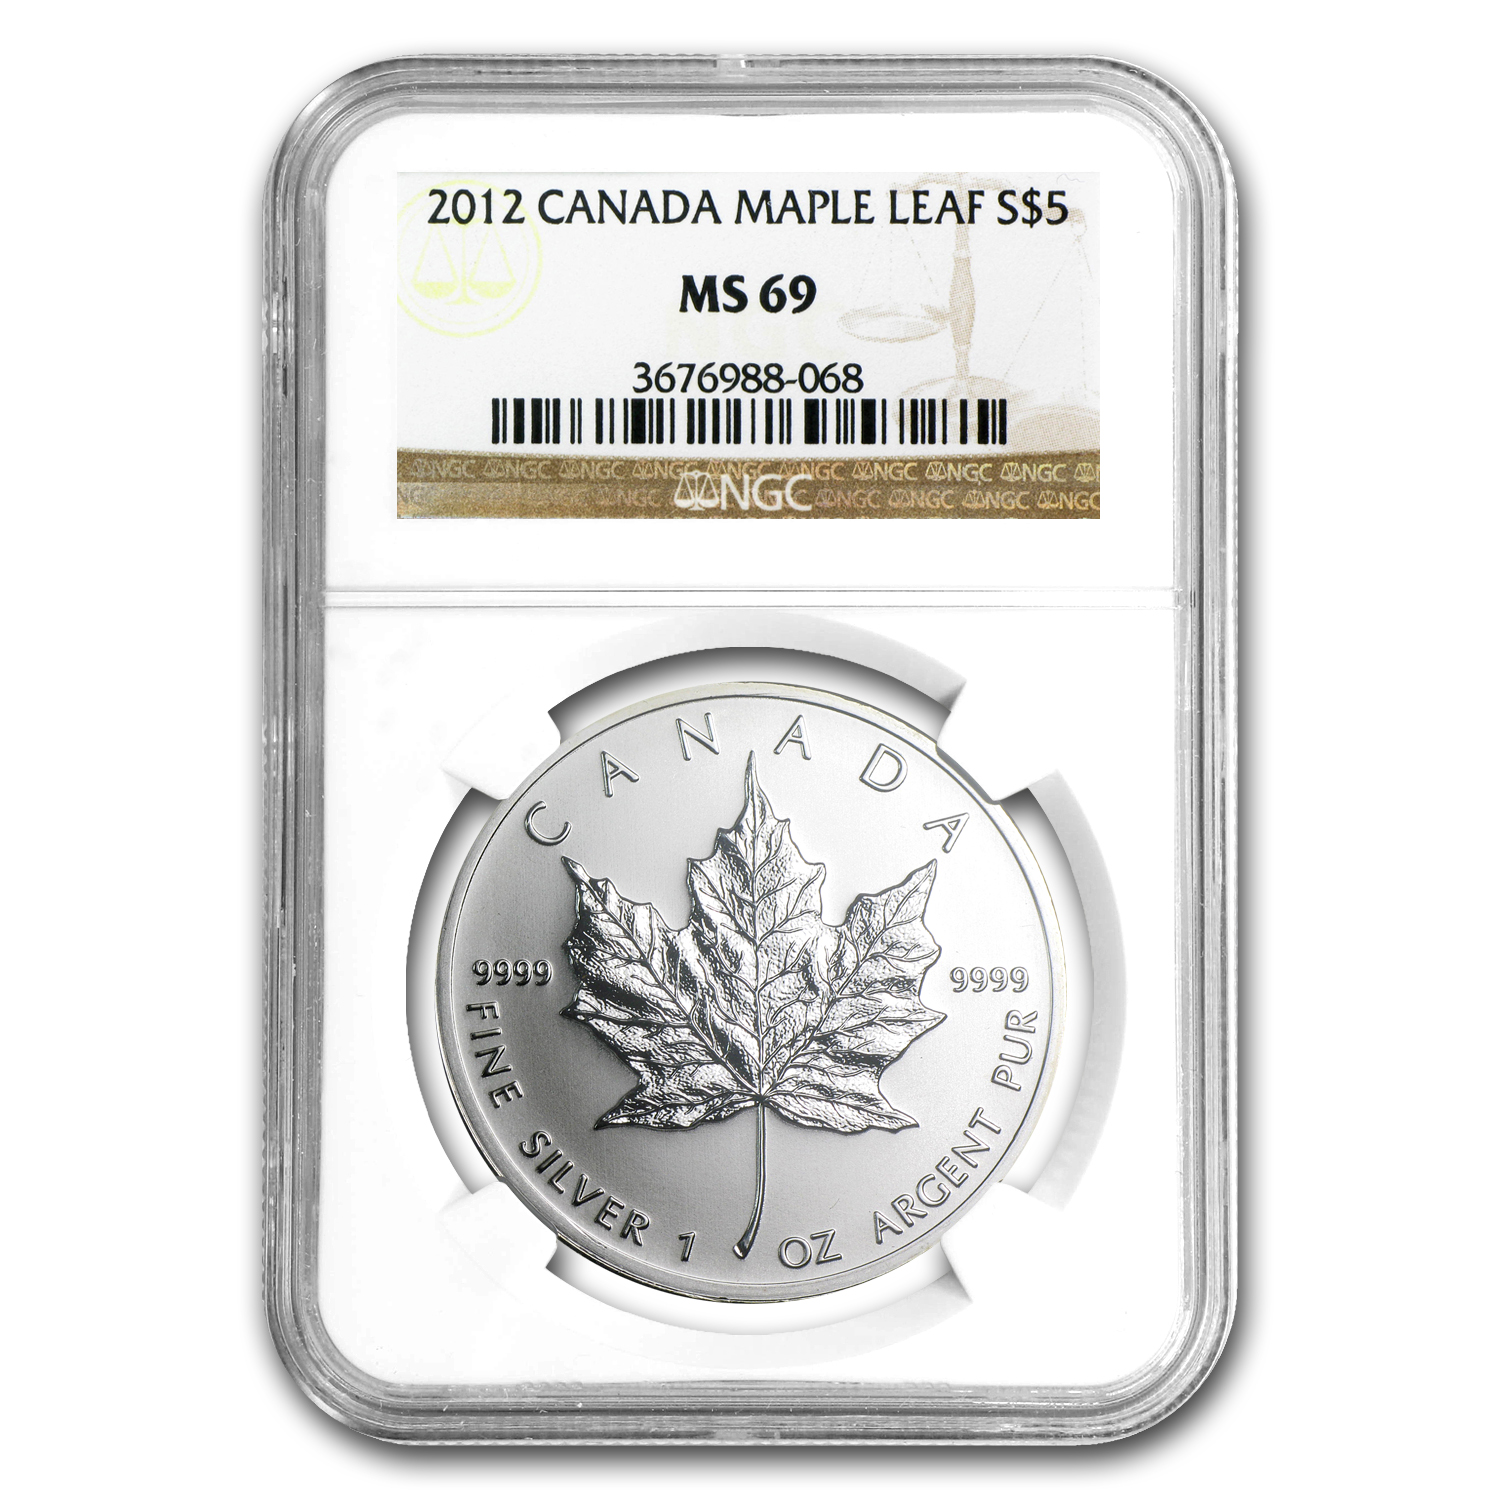 2012 1 oz Silver Canadian Maple Leaf MS-69 NGC